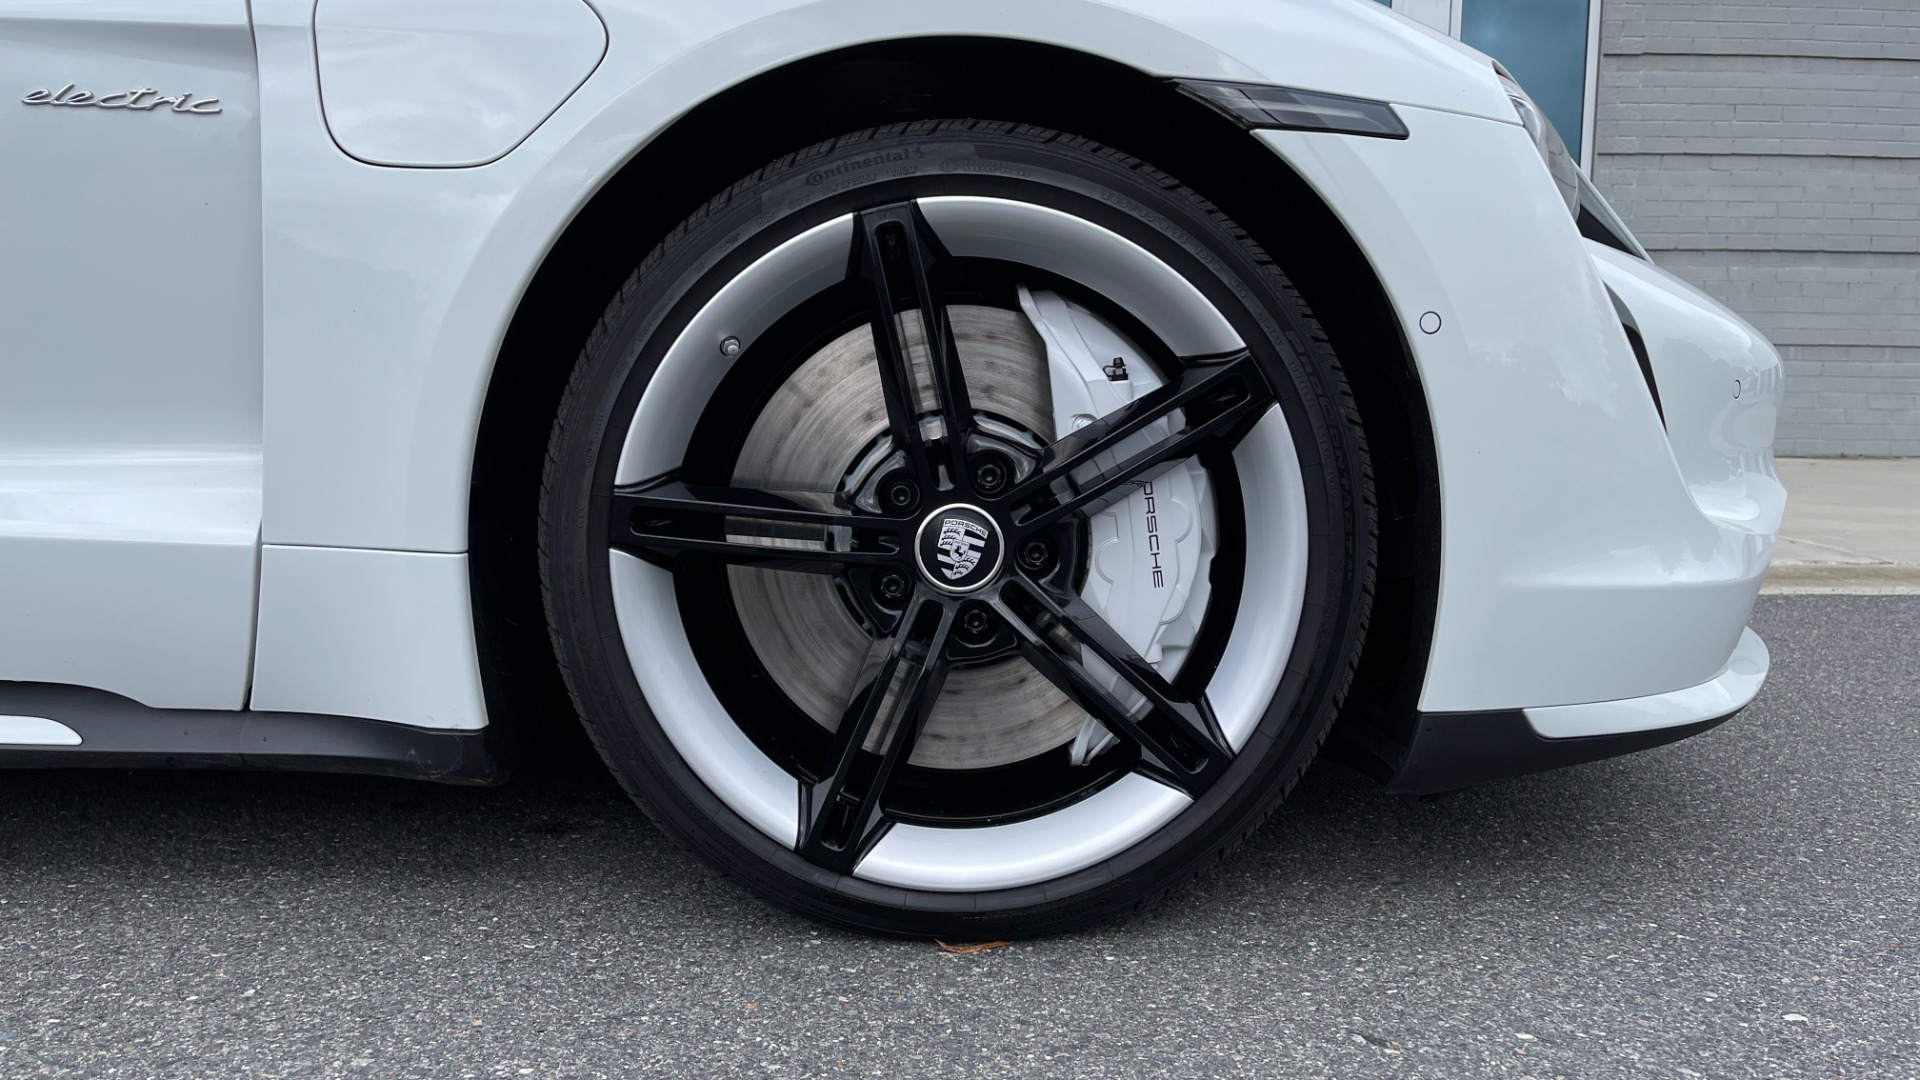 Used 2020 Porsche TAYCAN TURBO SEDAN / AWD / NAV / BOSE / PANO-ROOF / LCA / SURROUND VIEW for sale $162,995 at Formula Imports in Charlotte NC 28227 75